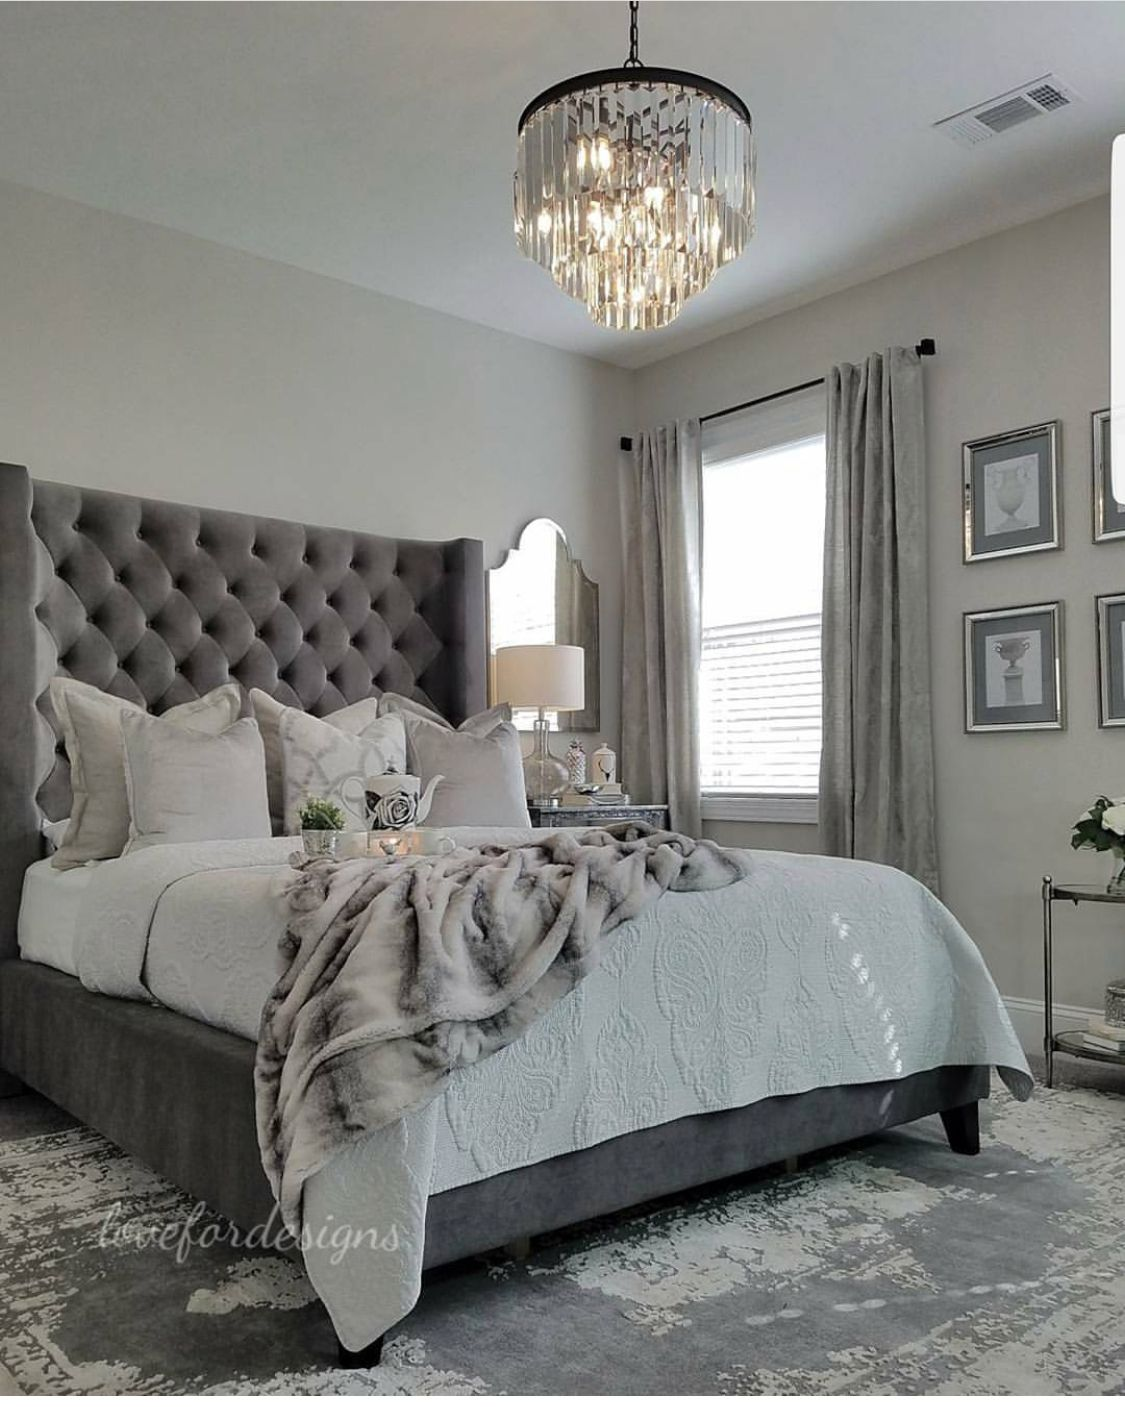 Wall Colour And Light Fitting Master Bedrooms Decor Home Decor Bedroom Luxurious Bedrooms